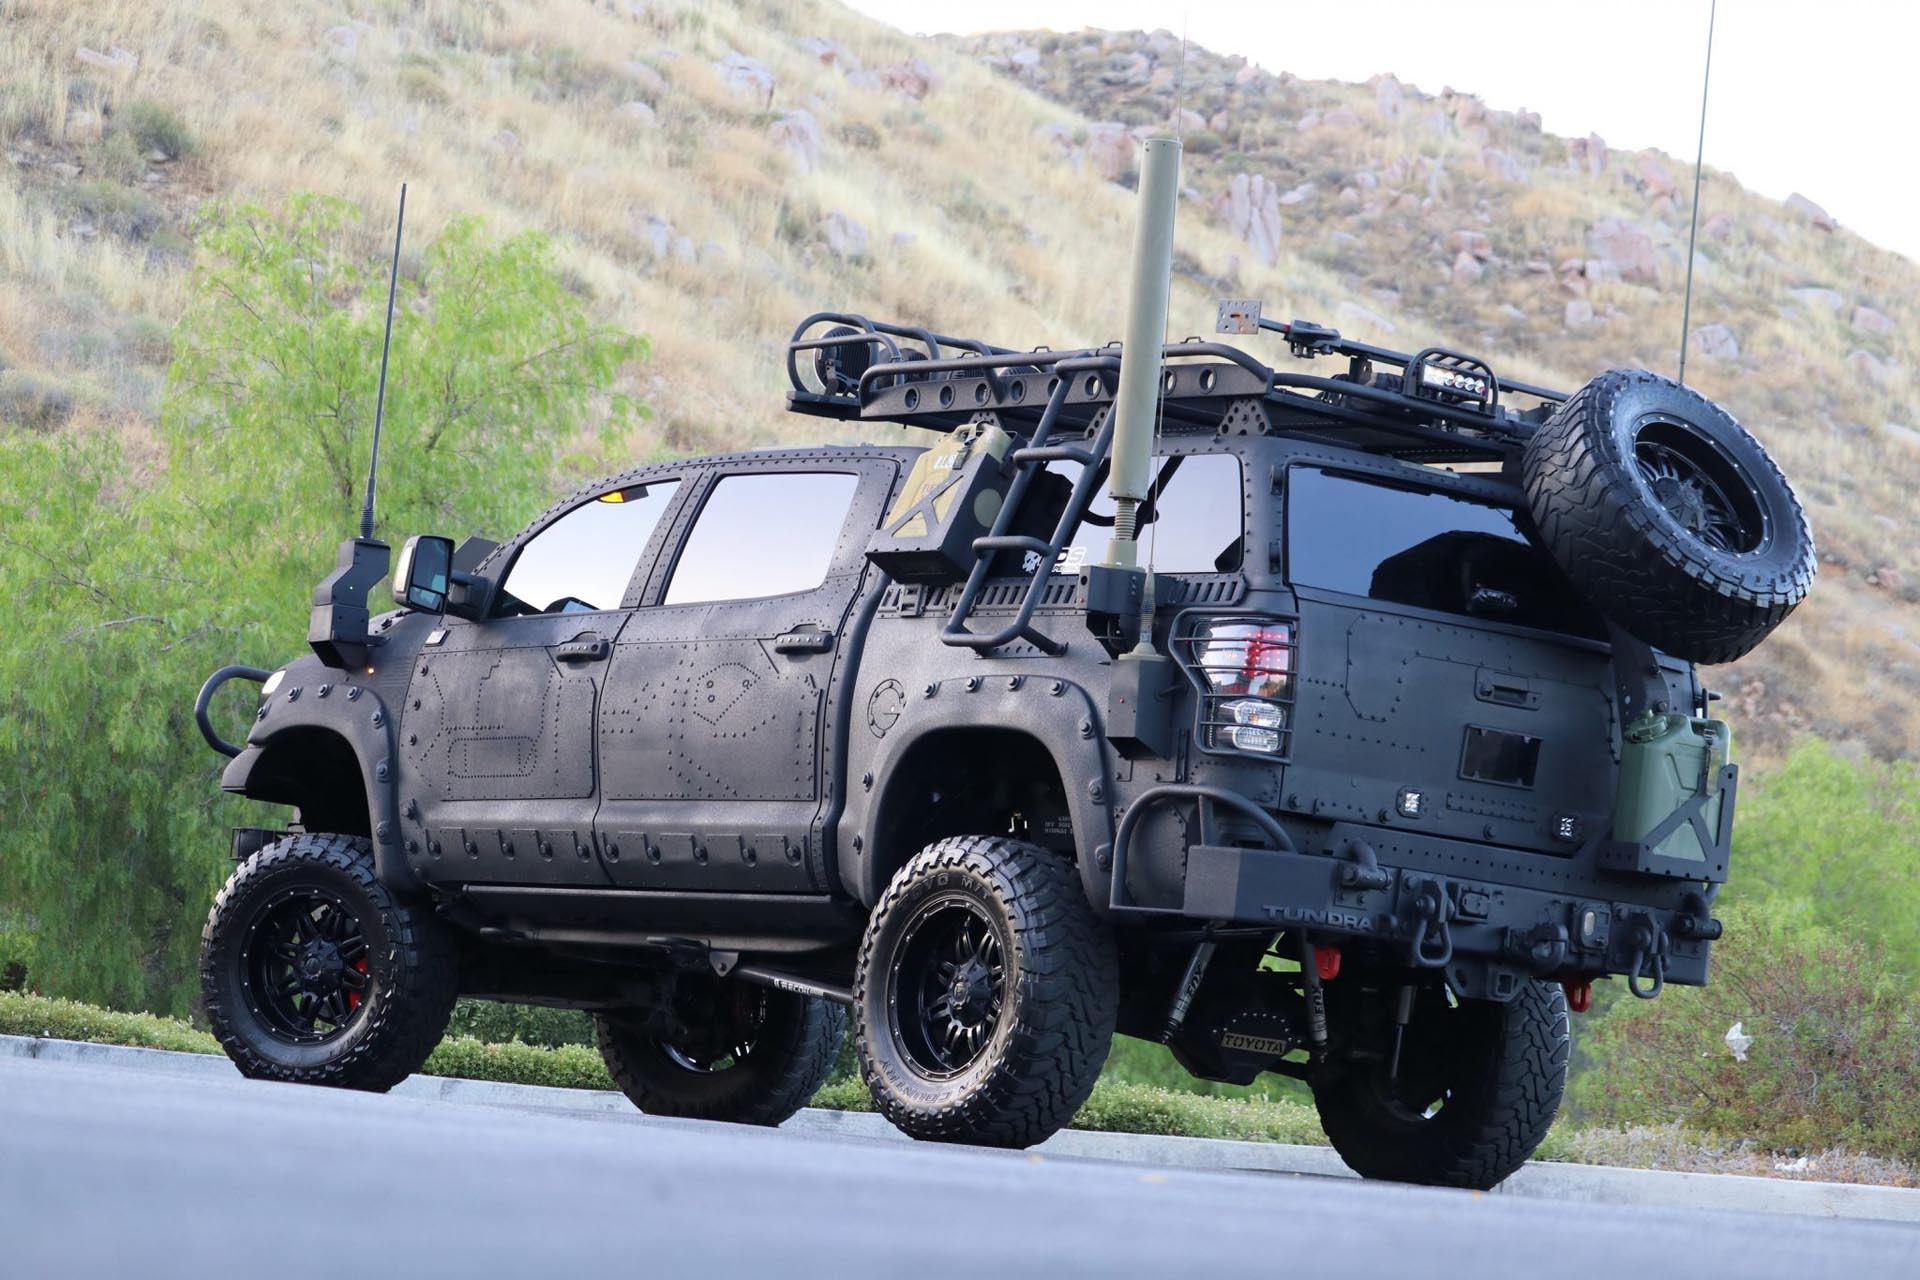 2013_toyota_custom_military_expedition_style_tundra_1592230076d63fce5c3655b483a8img_7850-scaled